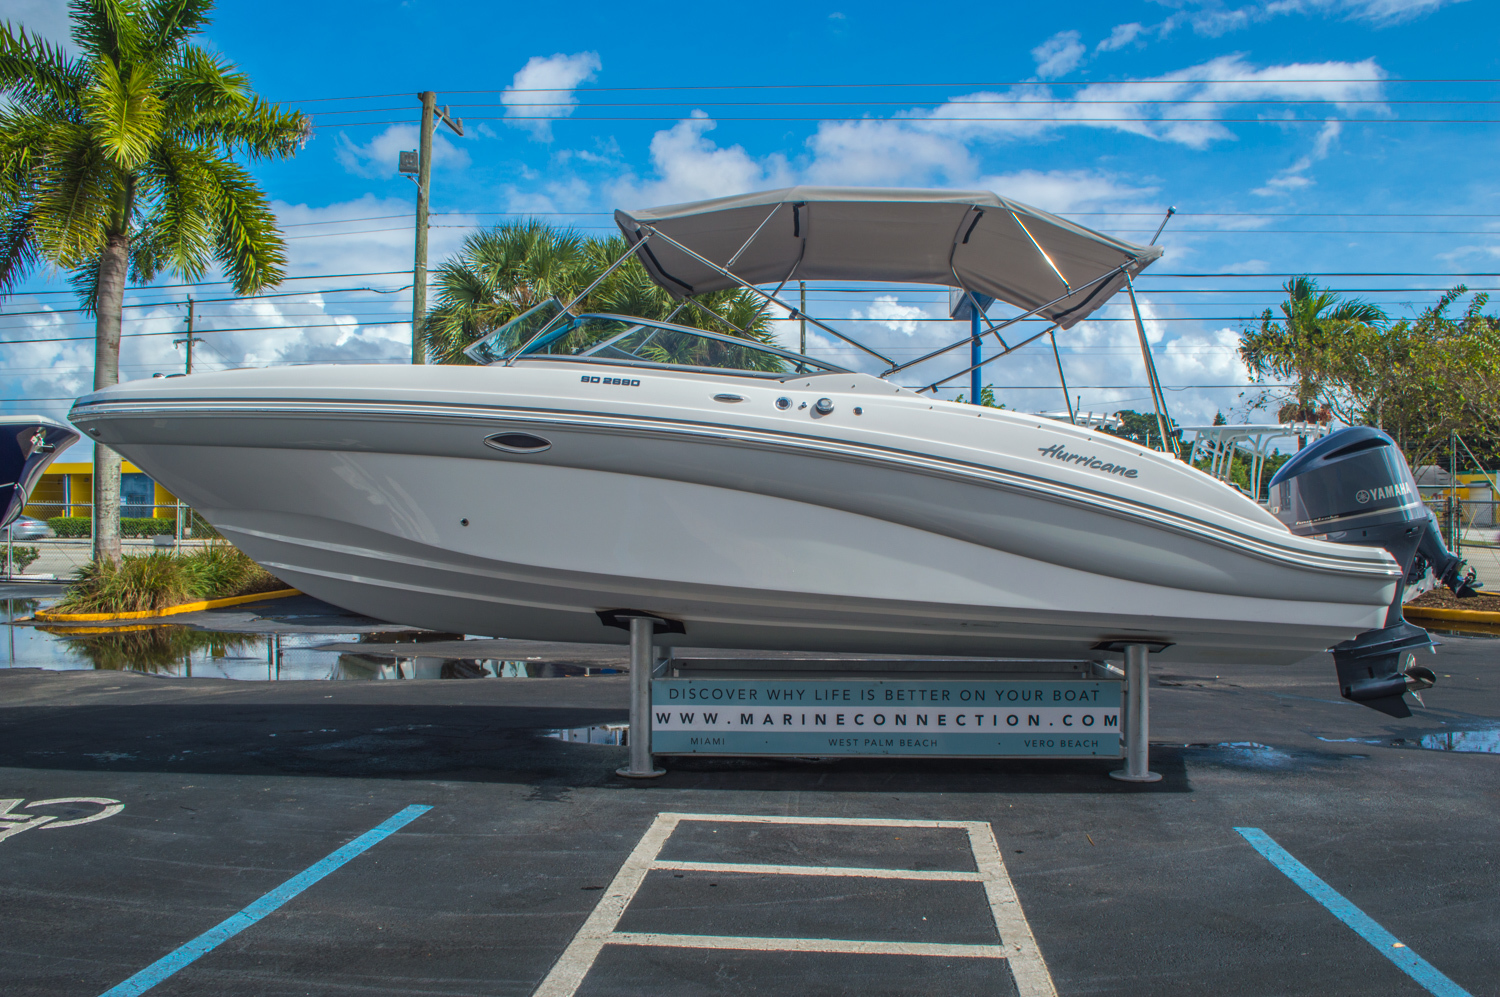 Thumbnail 4 for New 2016 Hurricane SunDeck SD 2690 OB boat for sale in West Palm Beach, FL